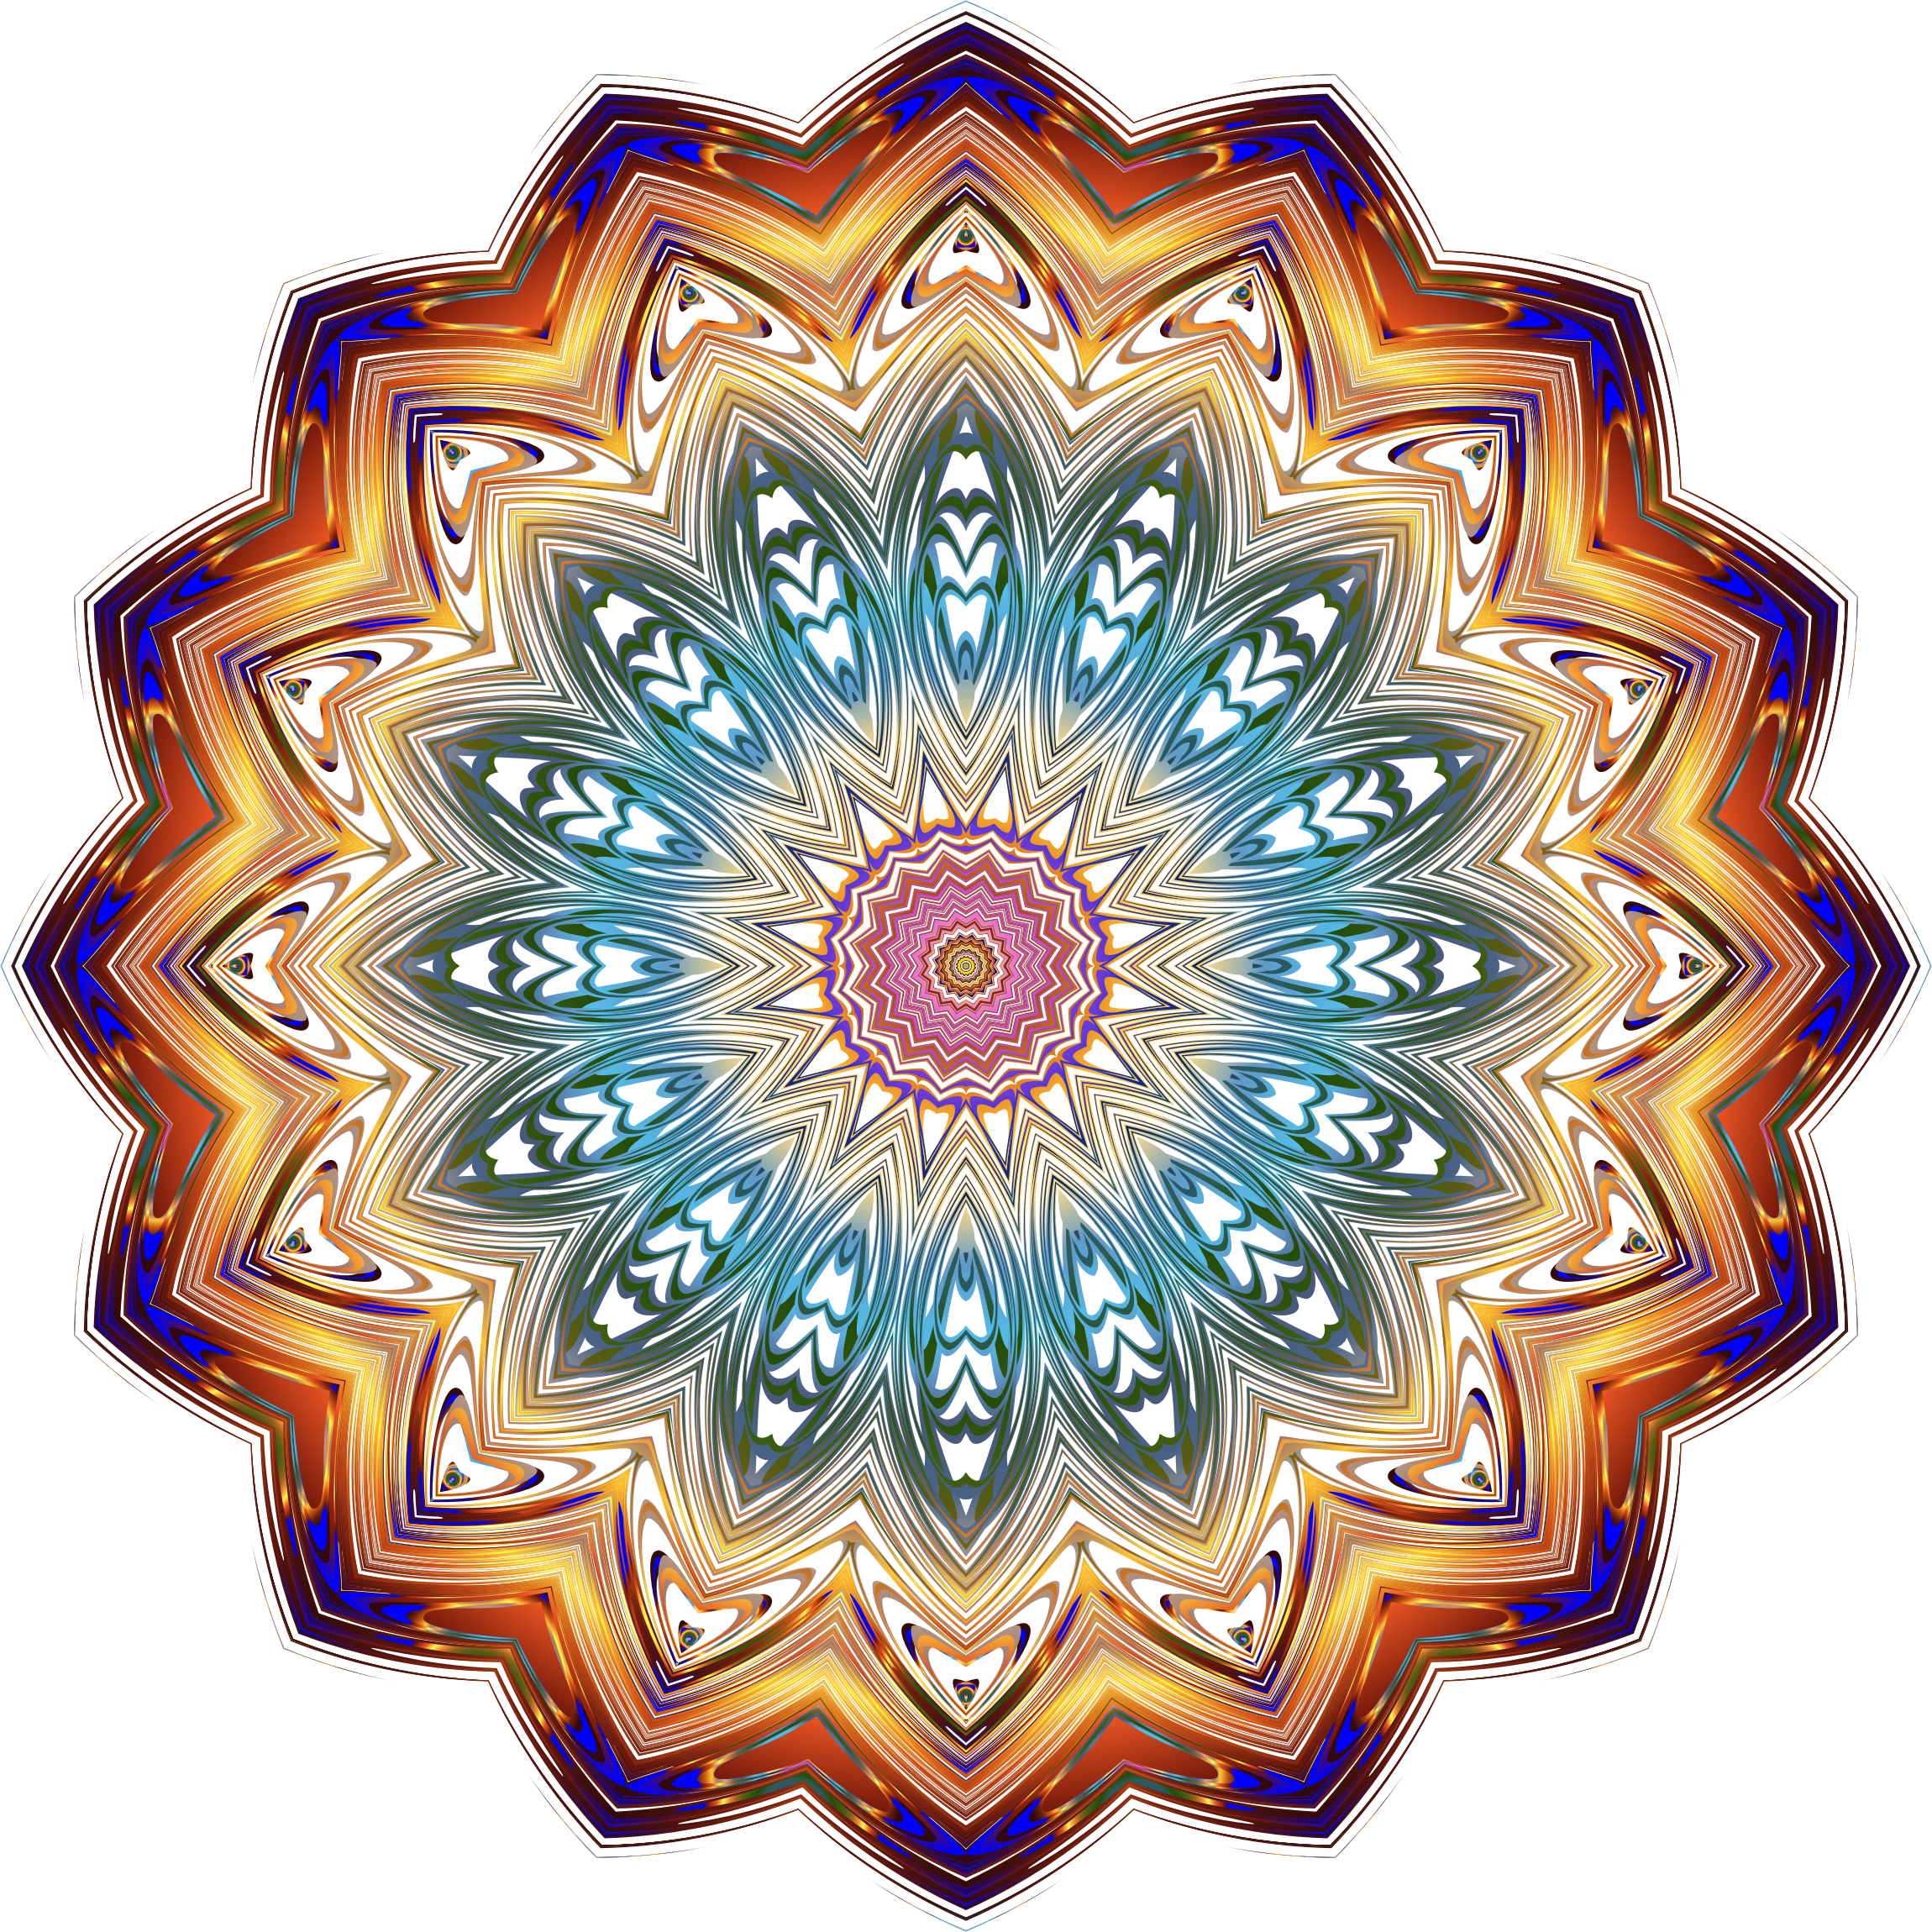 Prismatic Mandala Line Art 10 No Background by GDJ